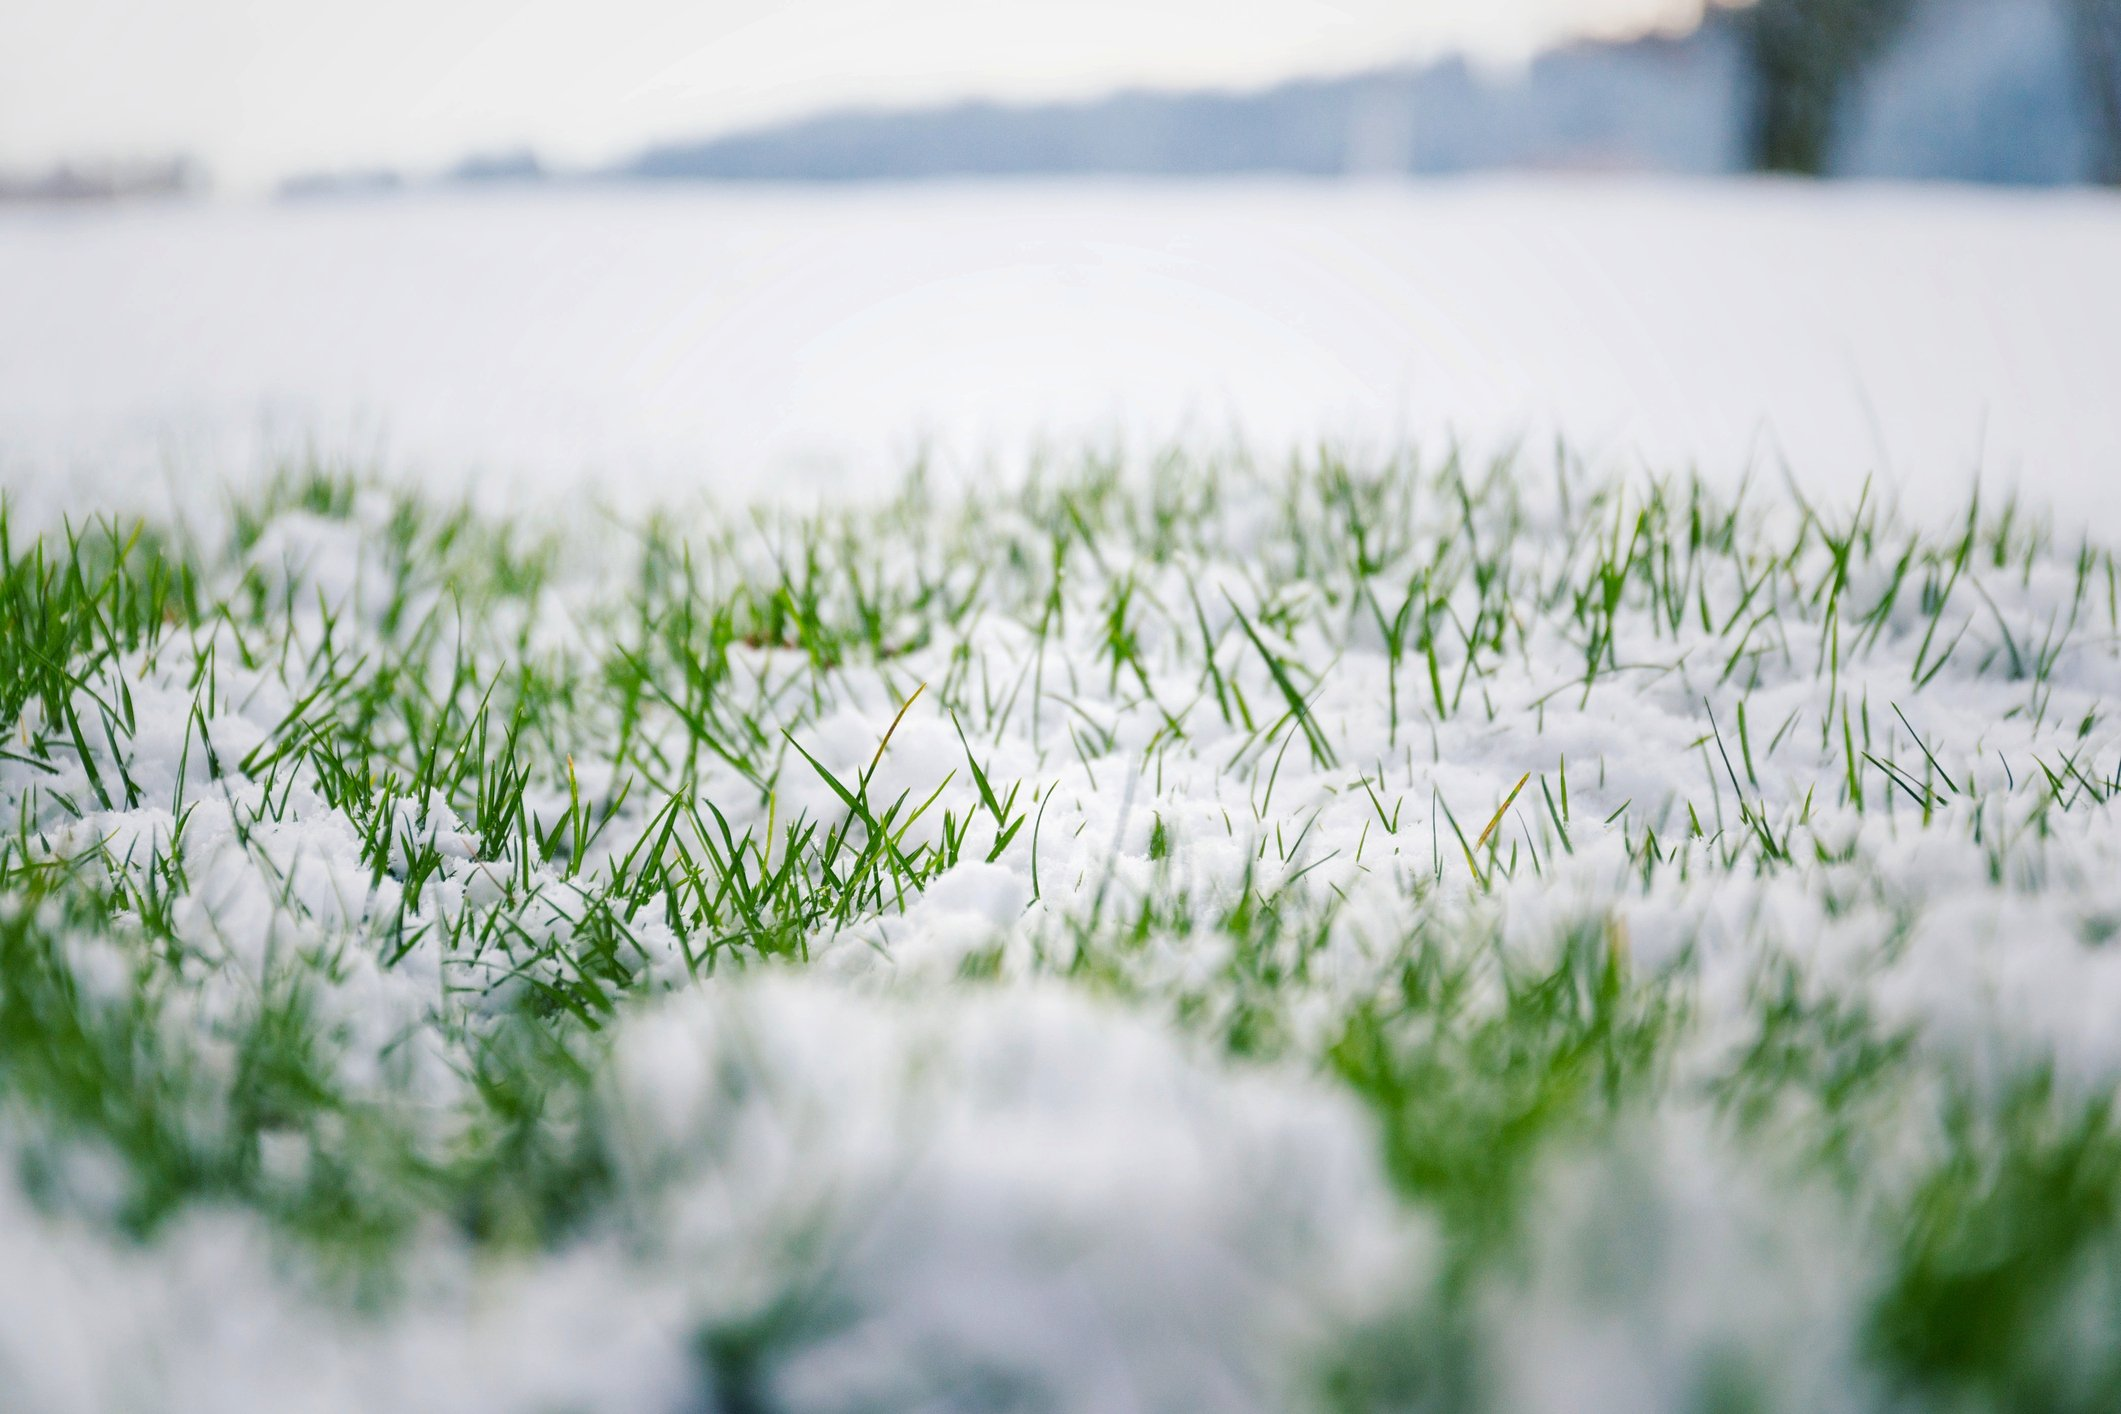 Winter Lawn Care: Potential Damages - Featured Image